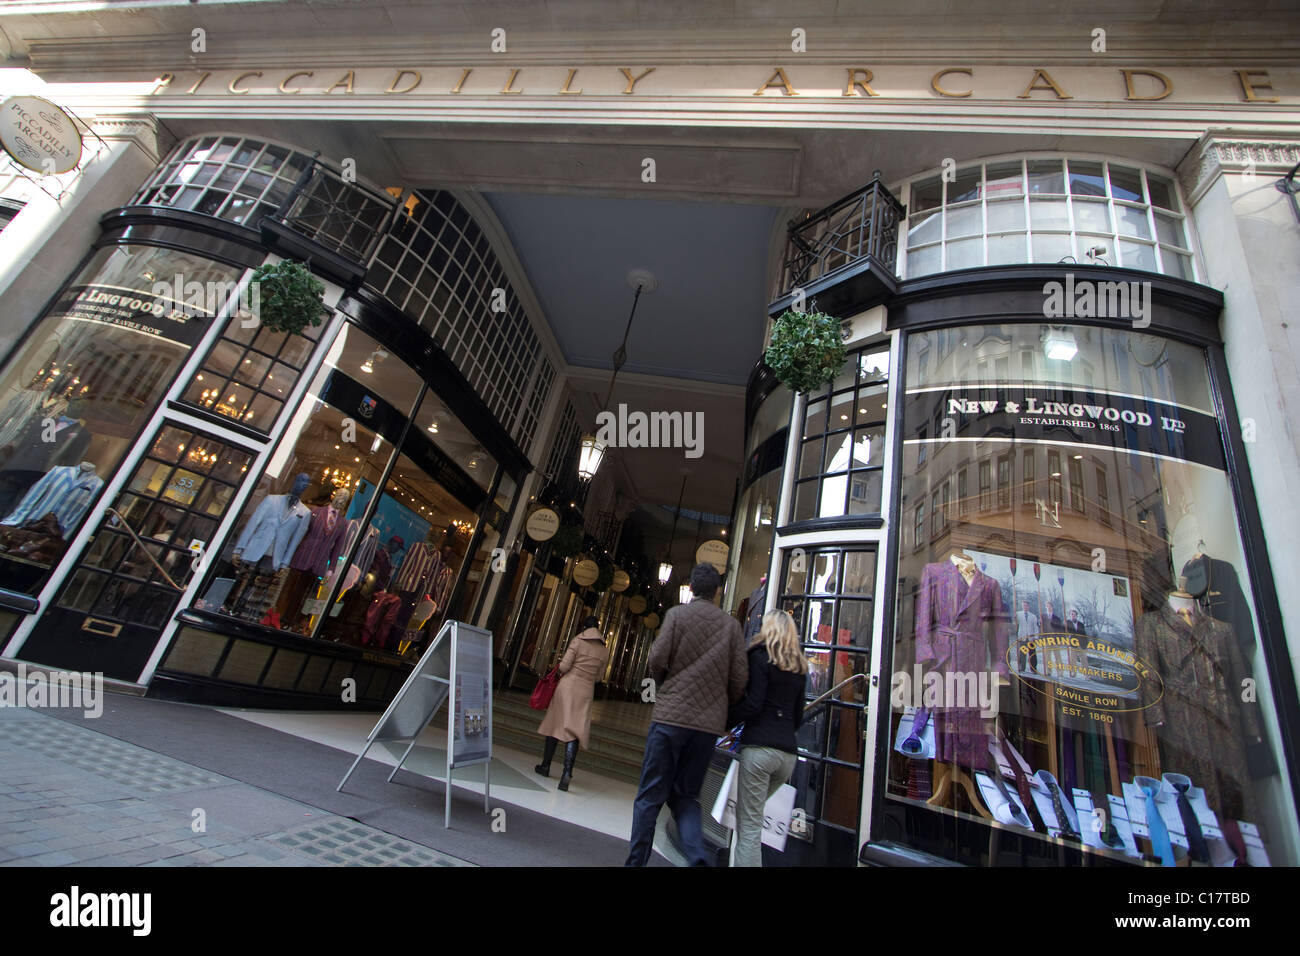 Piccadilly arcade london - Stock Image